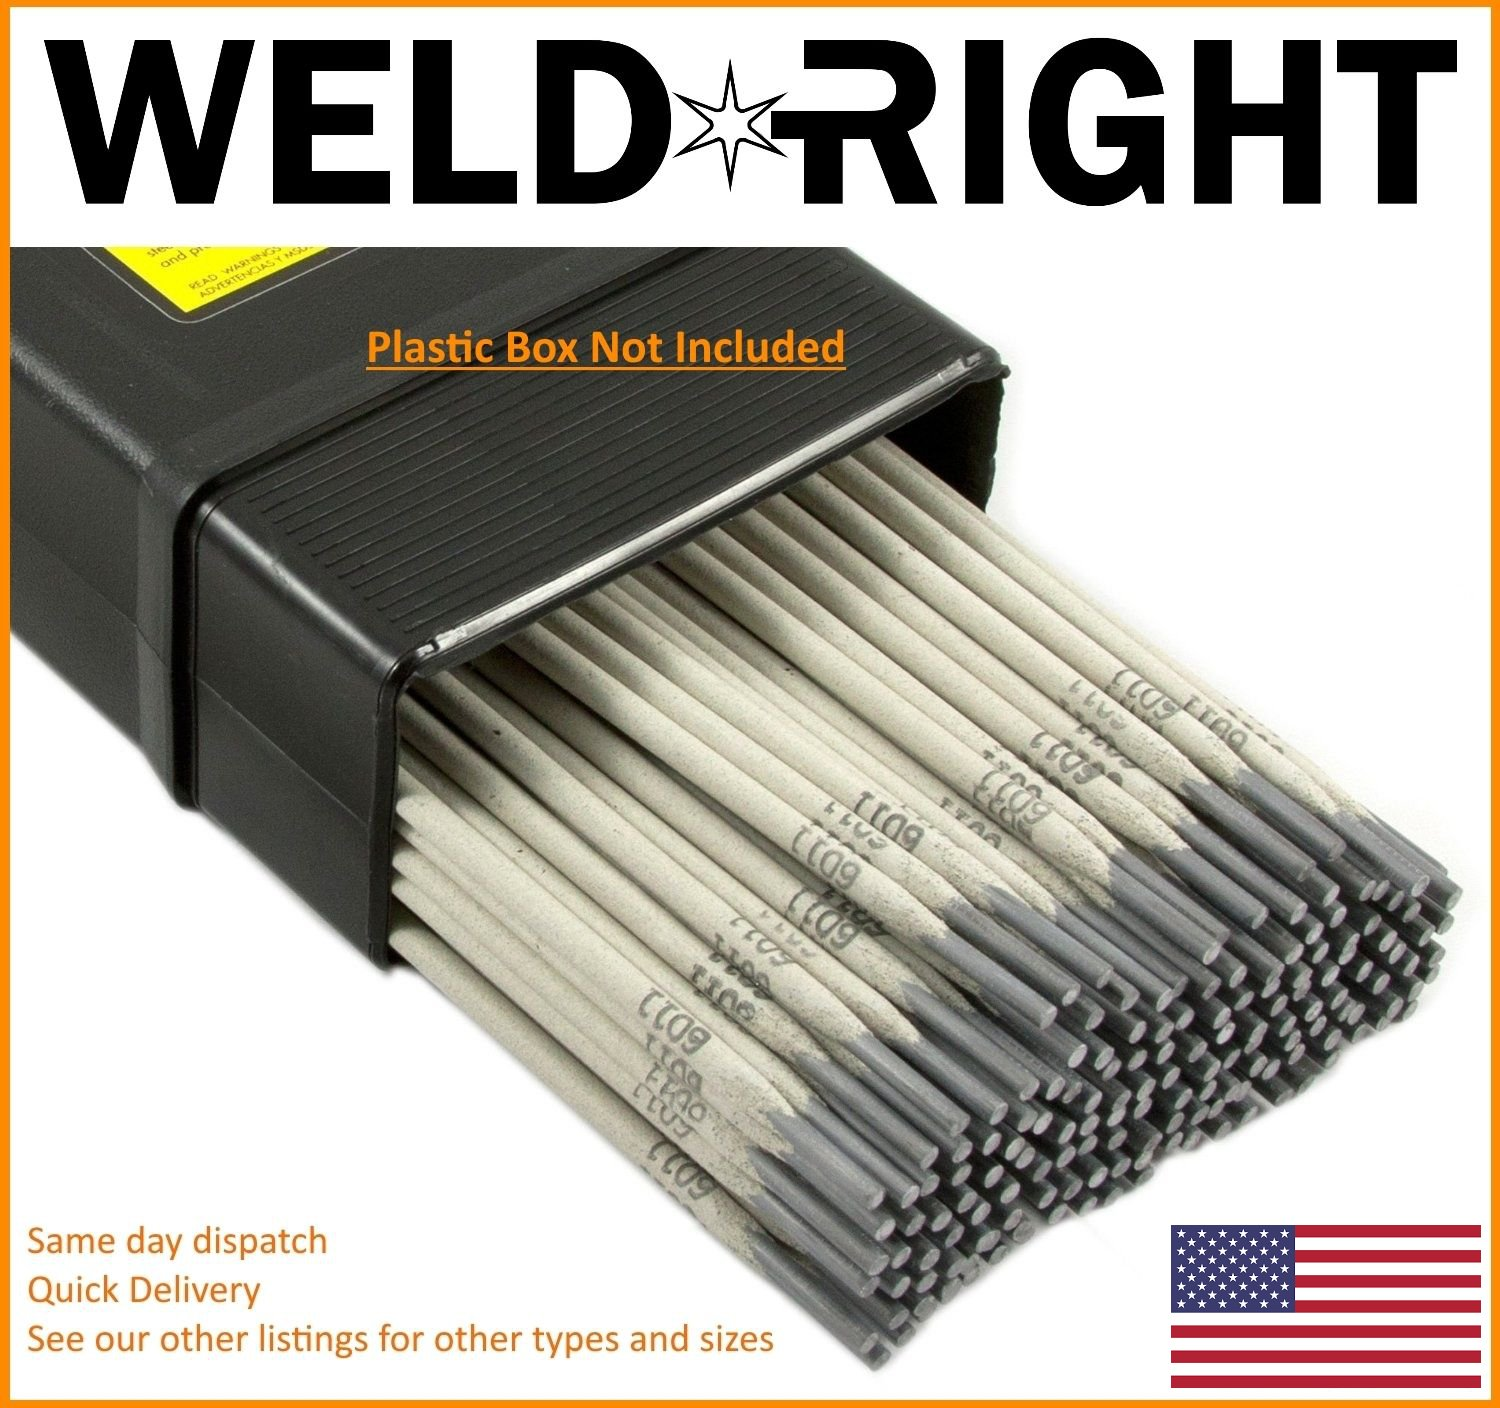 Weld Right General Purpose E6013 Arc Welding Electrodes Rods 1/16's - 1.6mm x 10-100 Qtys Weldright